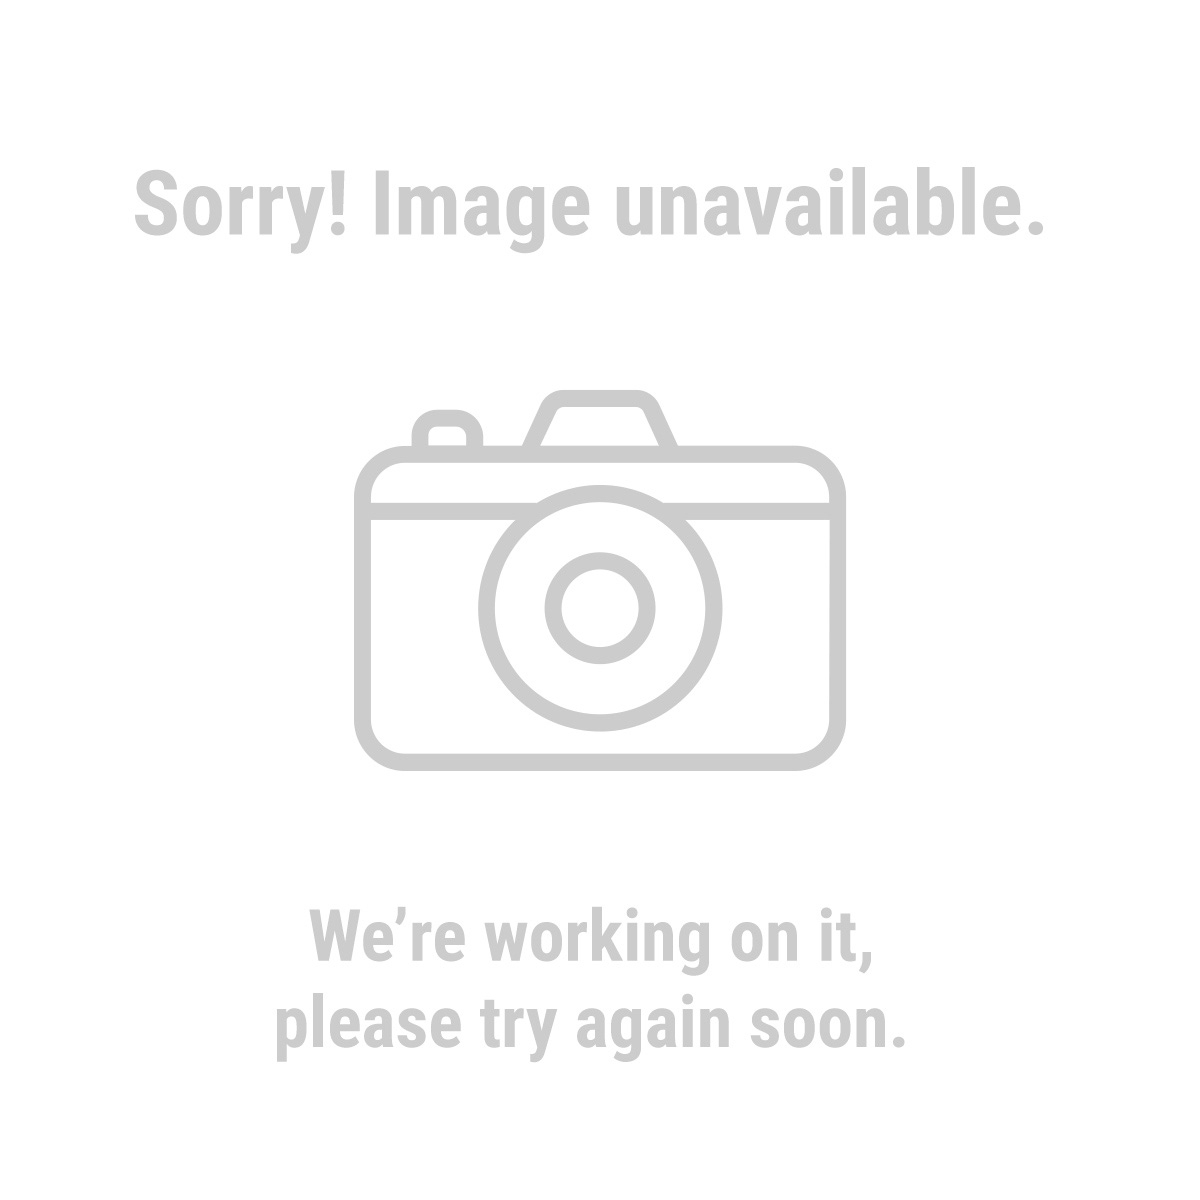 Storehouse 95736 Floor Bin Rack with 47 Bins